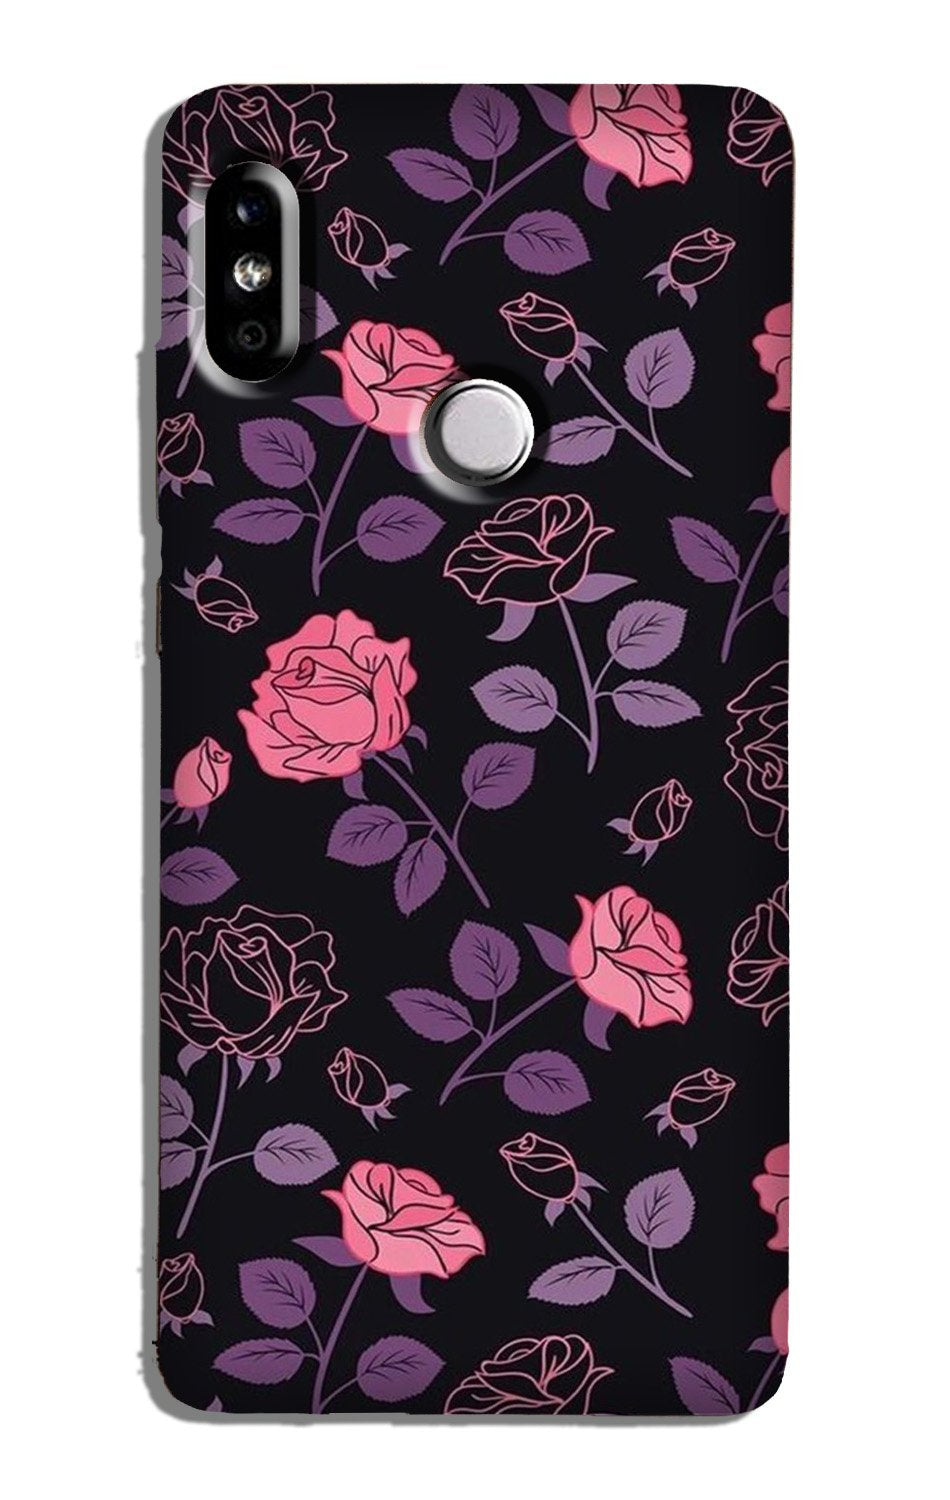 Rose Pattern Case for Redmi Note 5 Pro